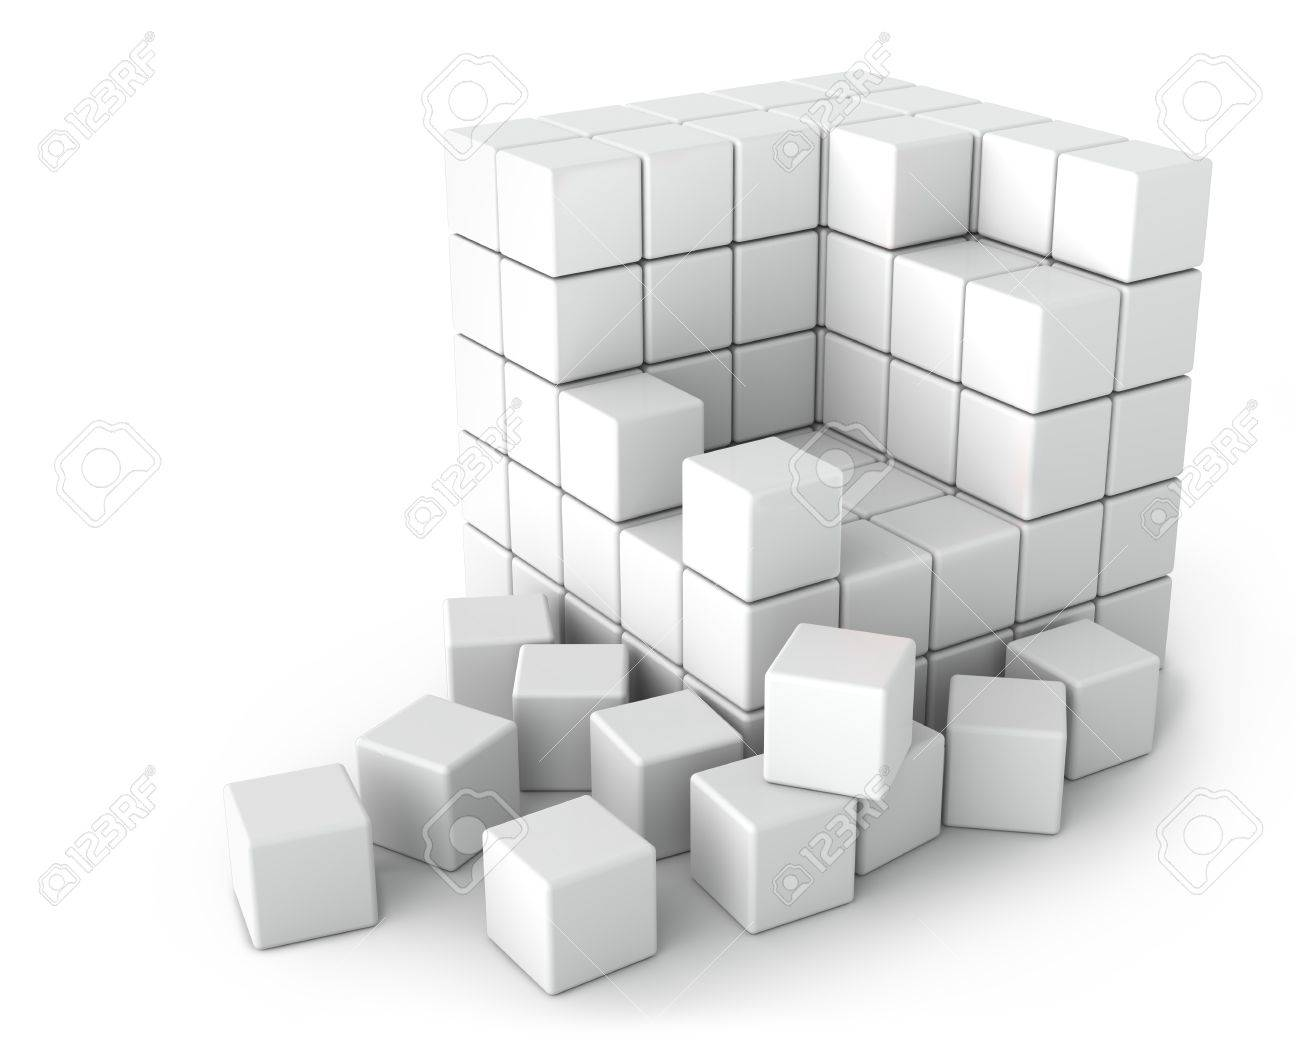 Big White Cube of Small Cubes on the White Background - 17706513